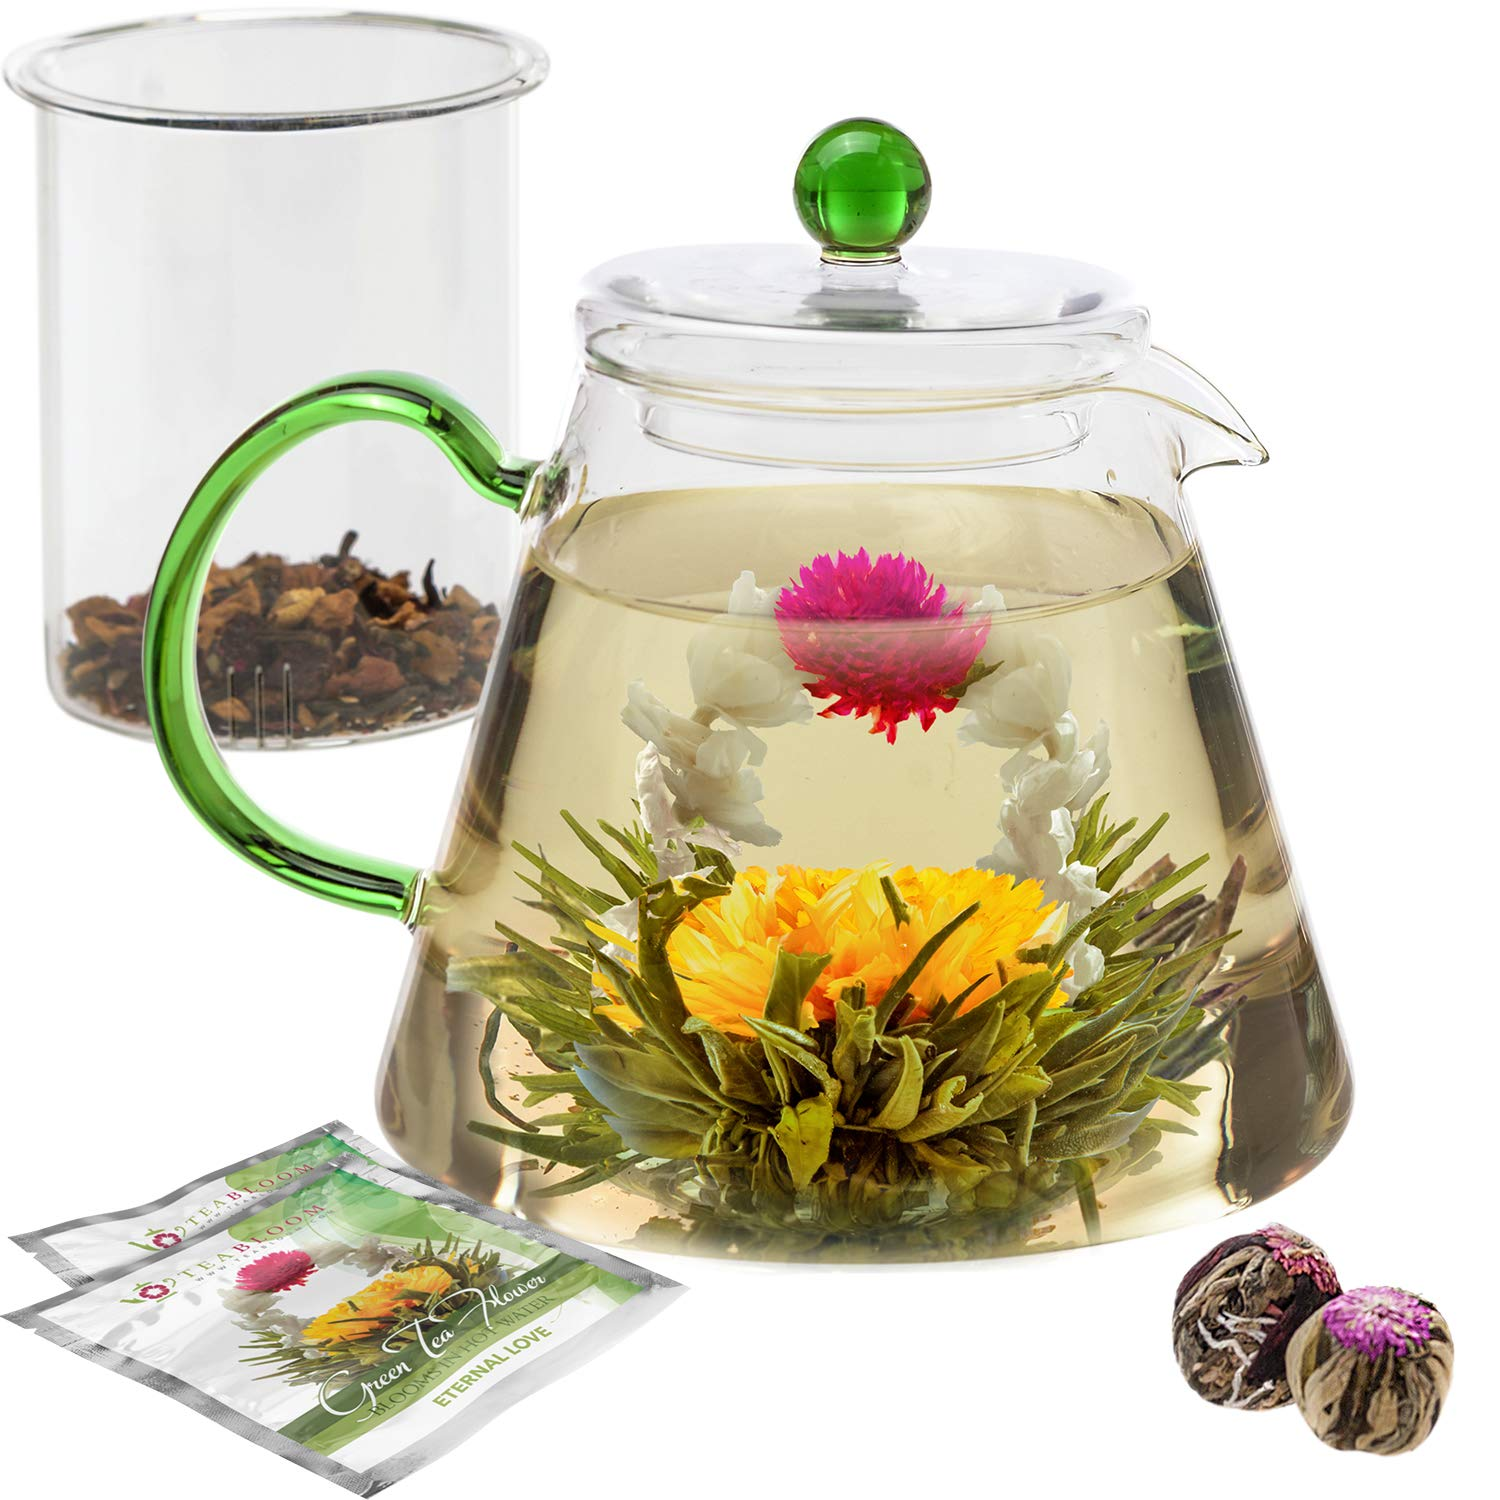 Teabloom Stovetop Safe Glass Teapot with Loose Tea Infuser (34 oz) - Blooming Tea Flowers Included (2) - Blooming Oasis